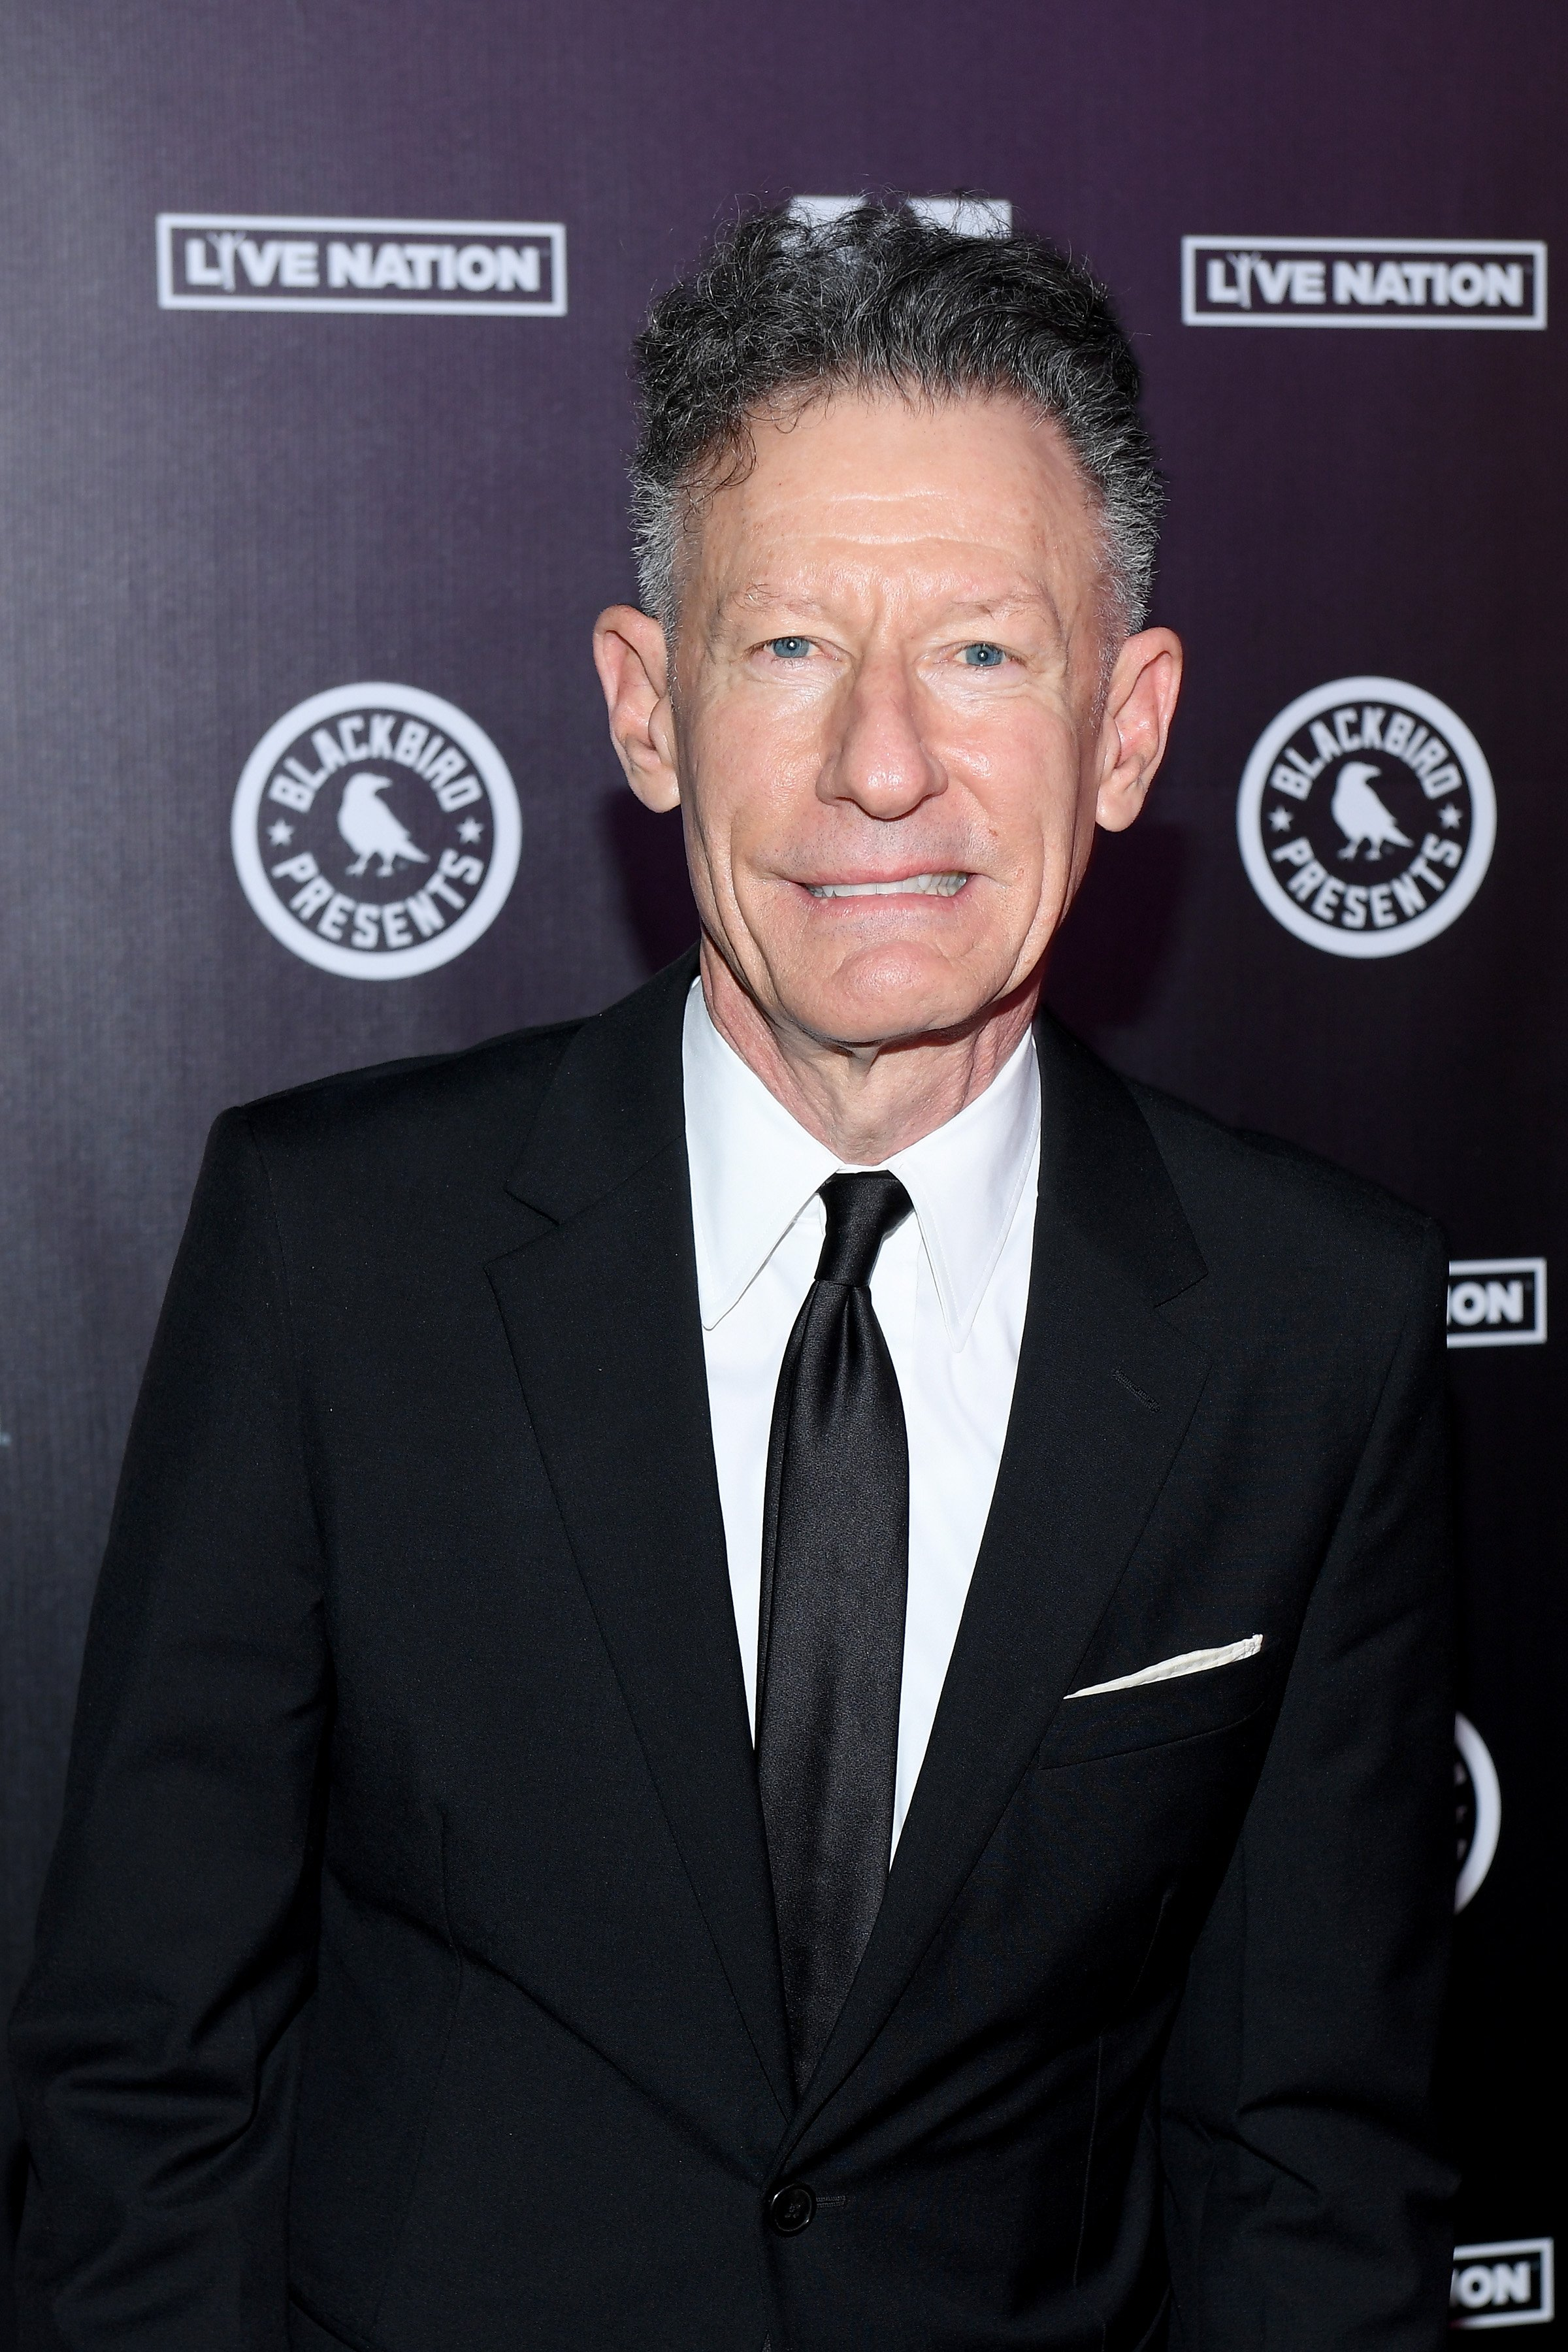 Lyle Lovett at Live Nation | Getty Images